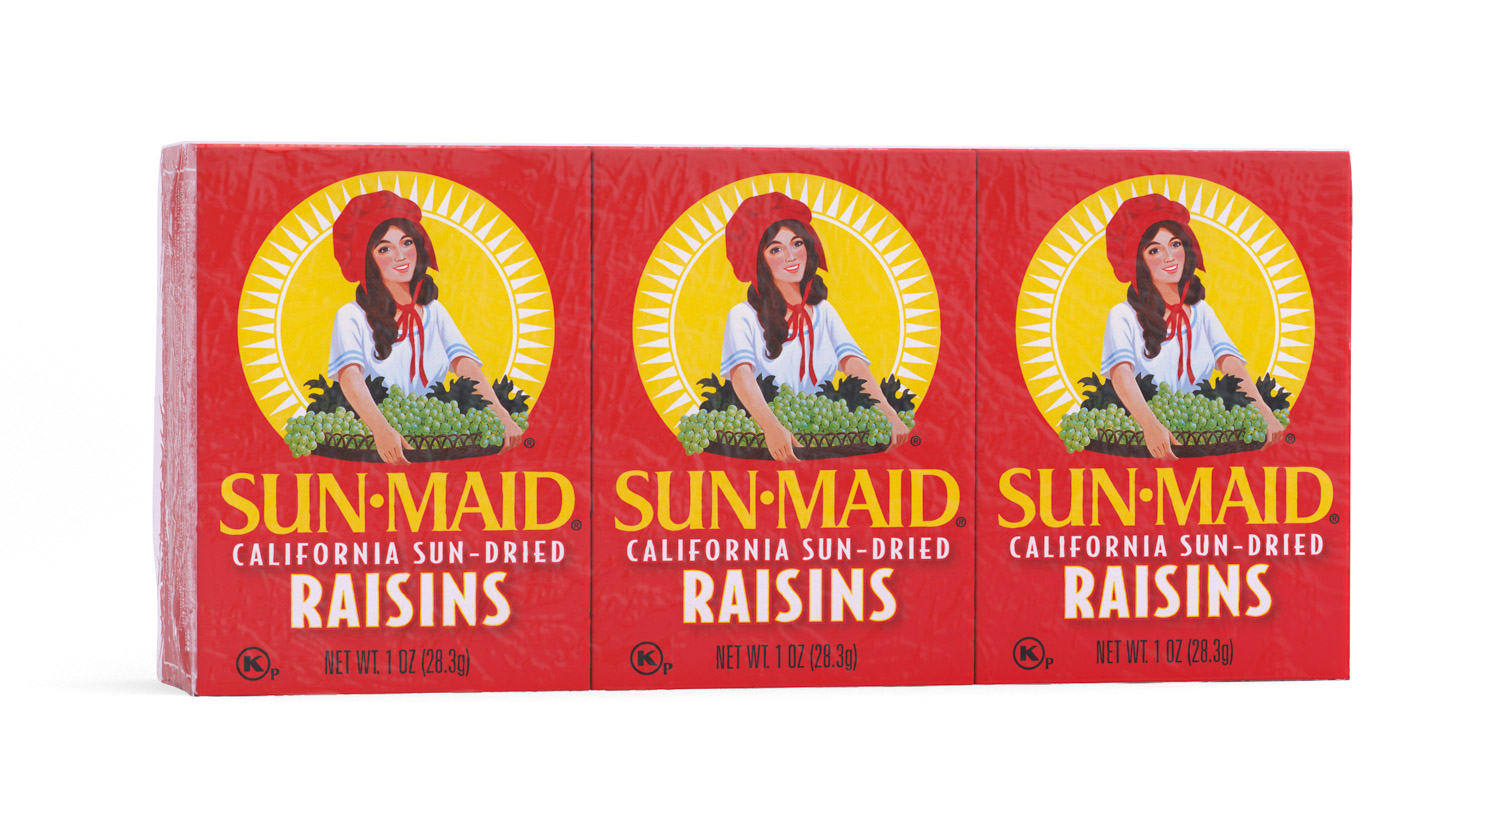 181218_sunmaid_6-Pack_Raisins_v12.jpg